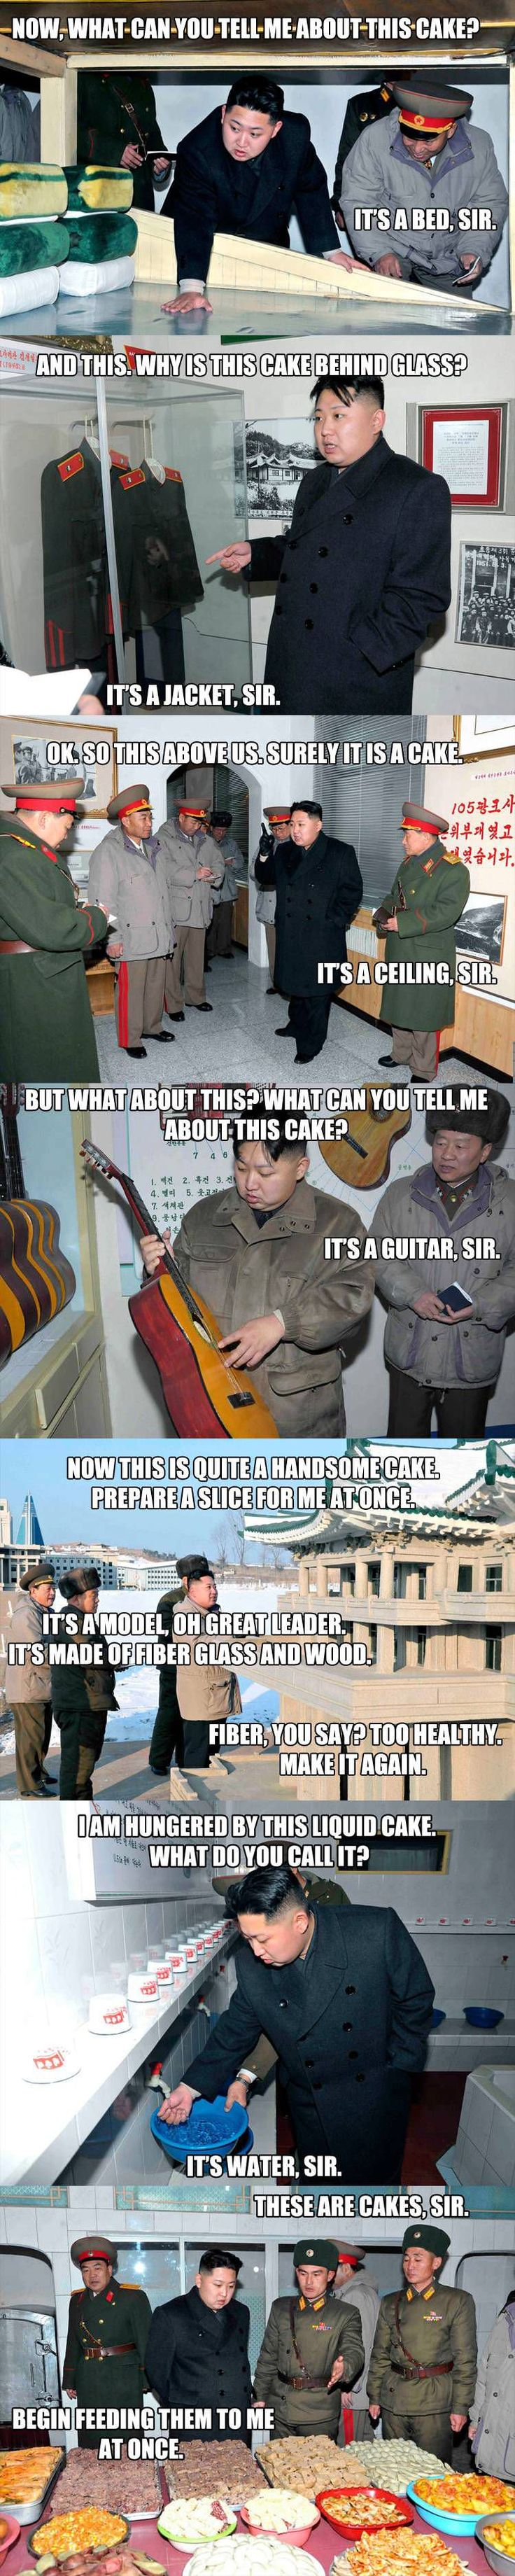 For Kim, all days are cake days